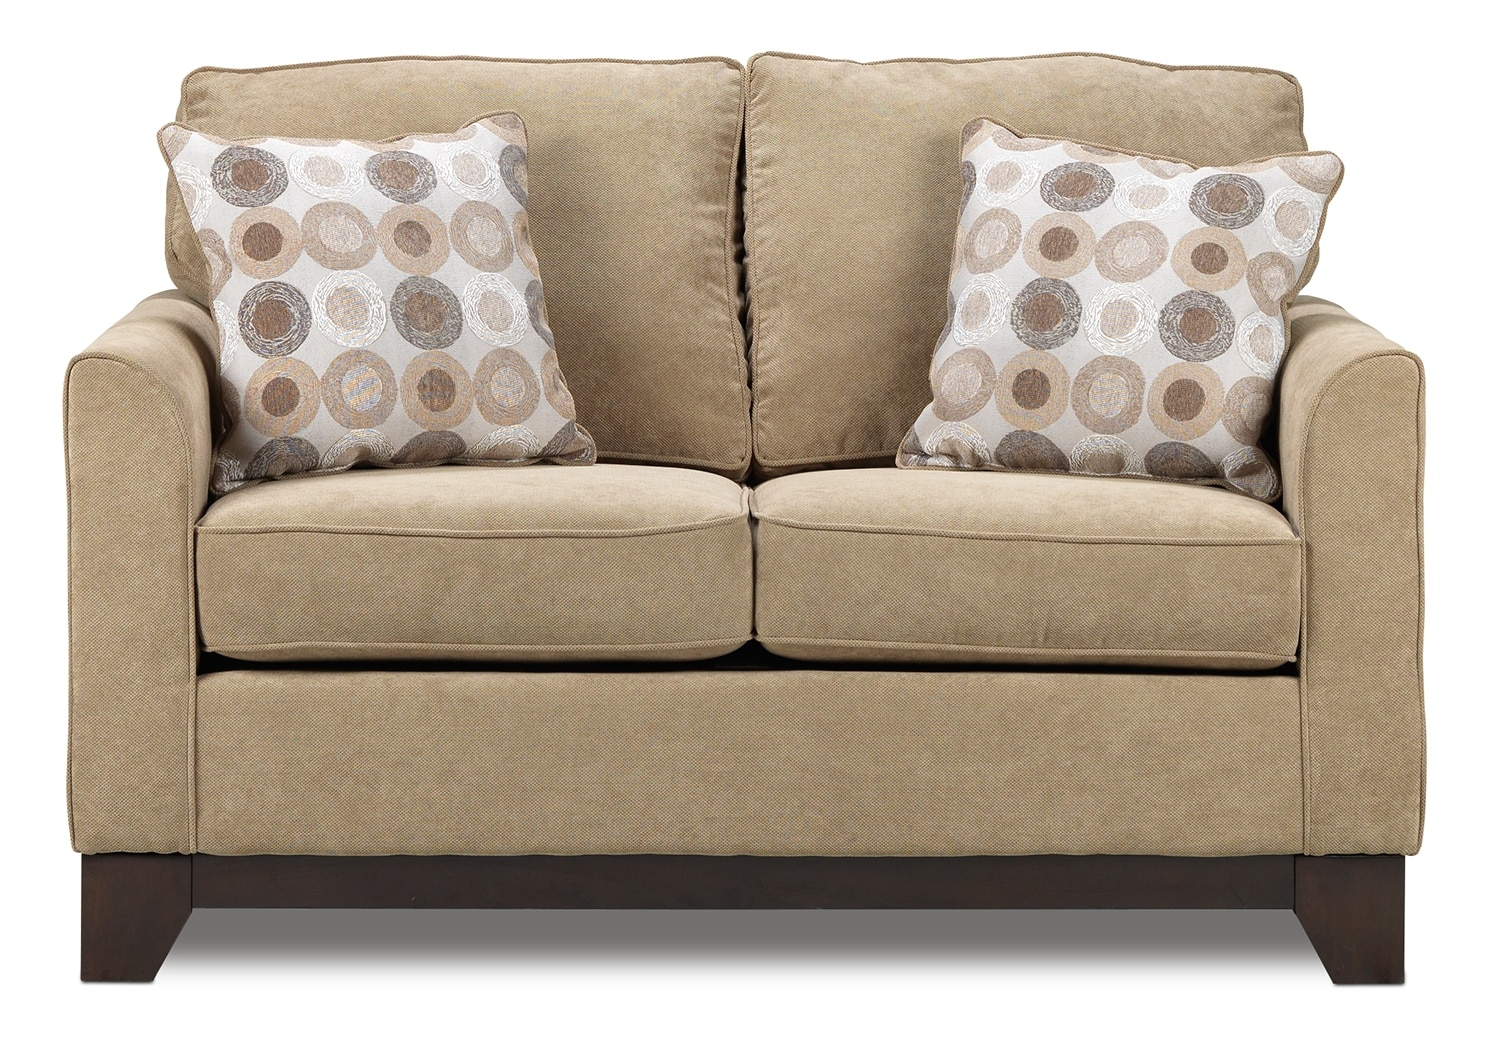 Sand Castle Loveseat - Light Brown